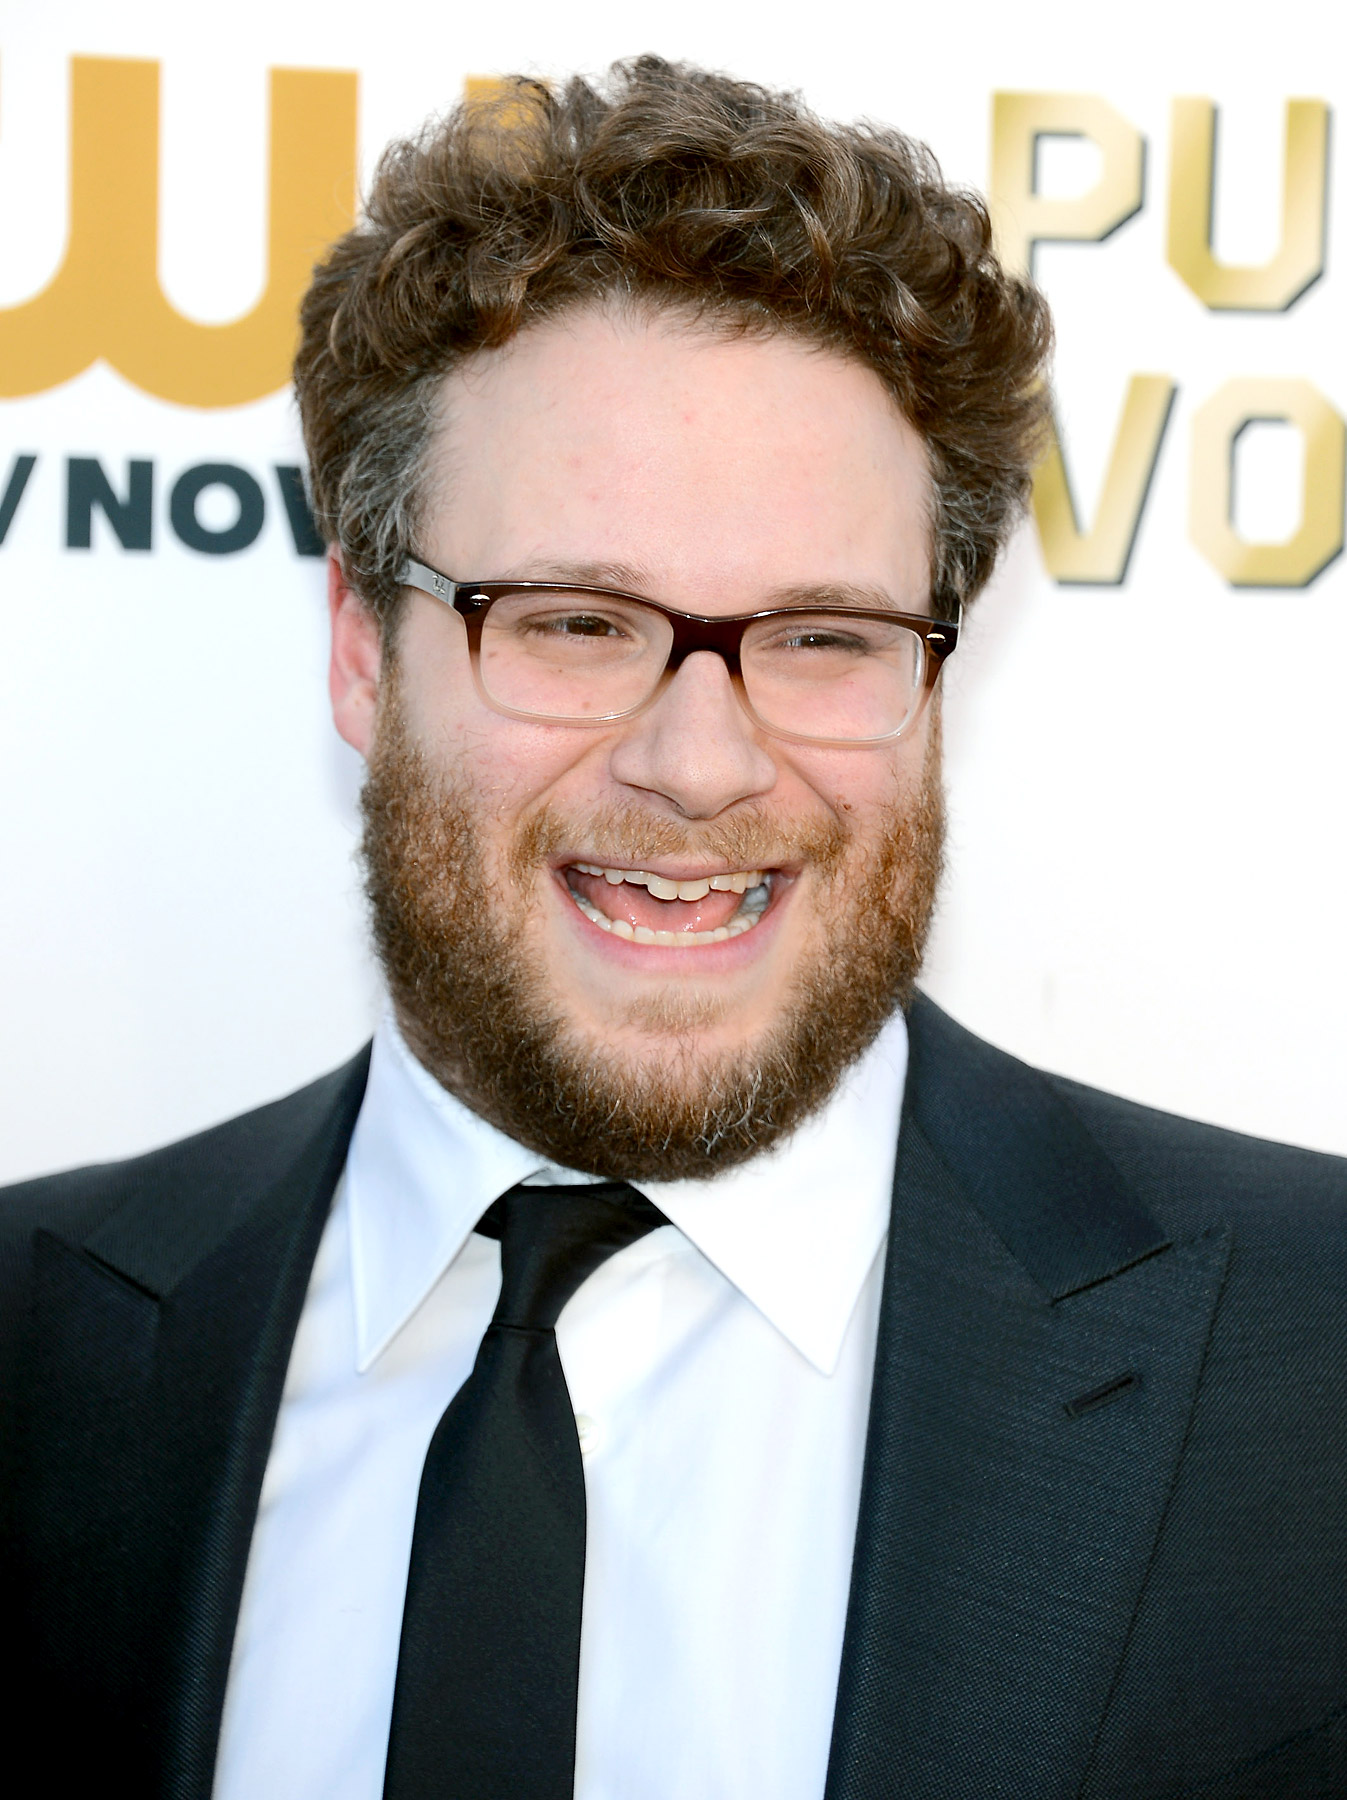 """After starring in numerous weed-related films like 2008's Pineapple Express and 2013's This Is the End , it's no secret that Seth Rogen likes to light up. """"I think people still live with the propaganda version of it where they think it's gonna make you go crazy or you can never be productive when you use it,"""" Rogen told ITN News."""